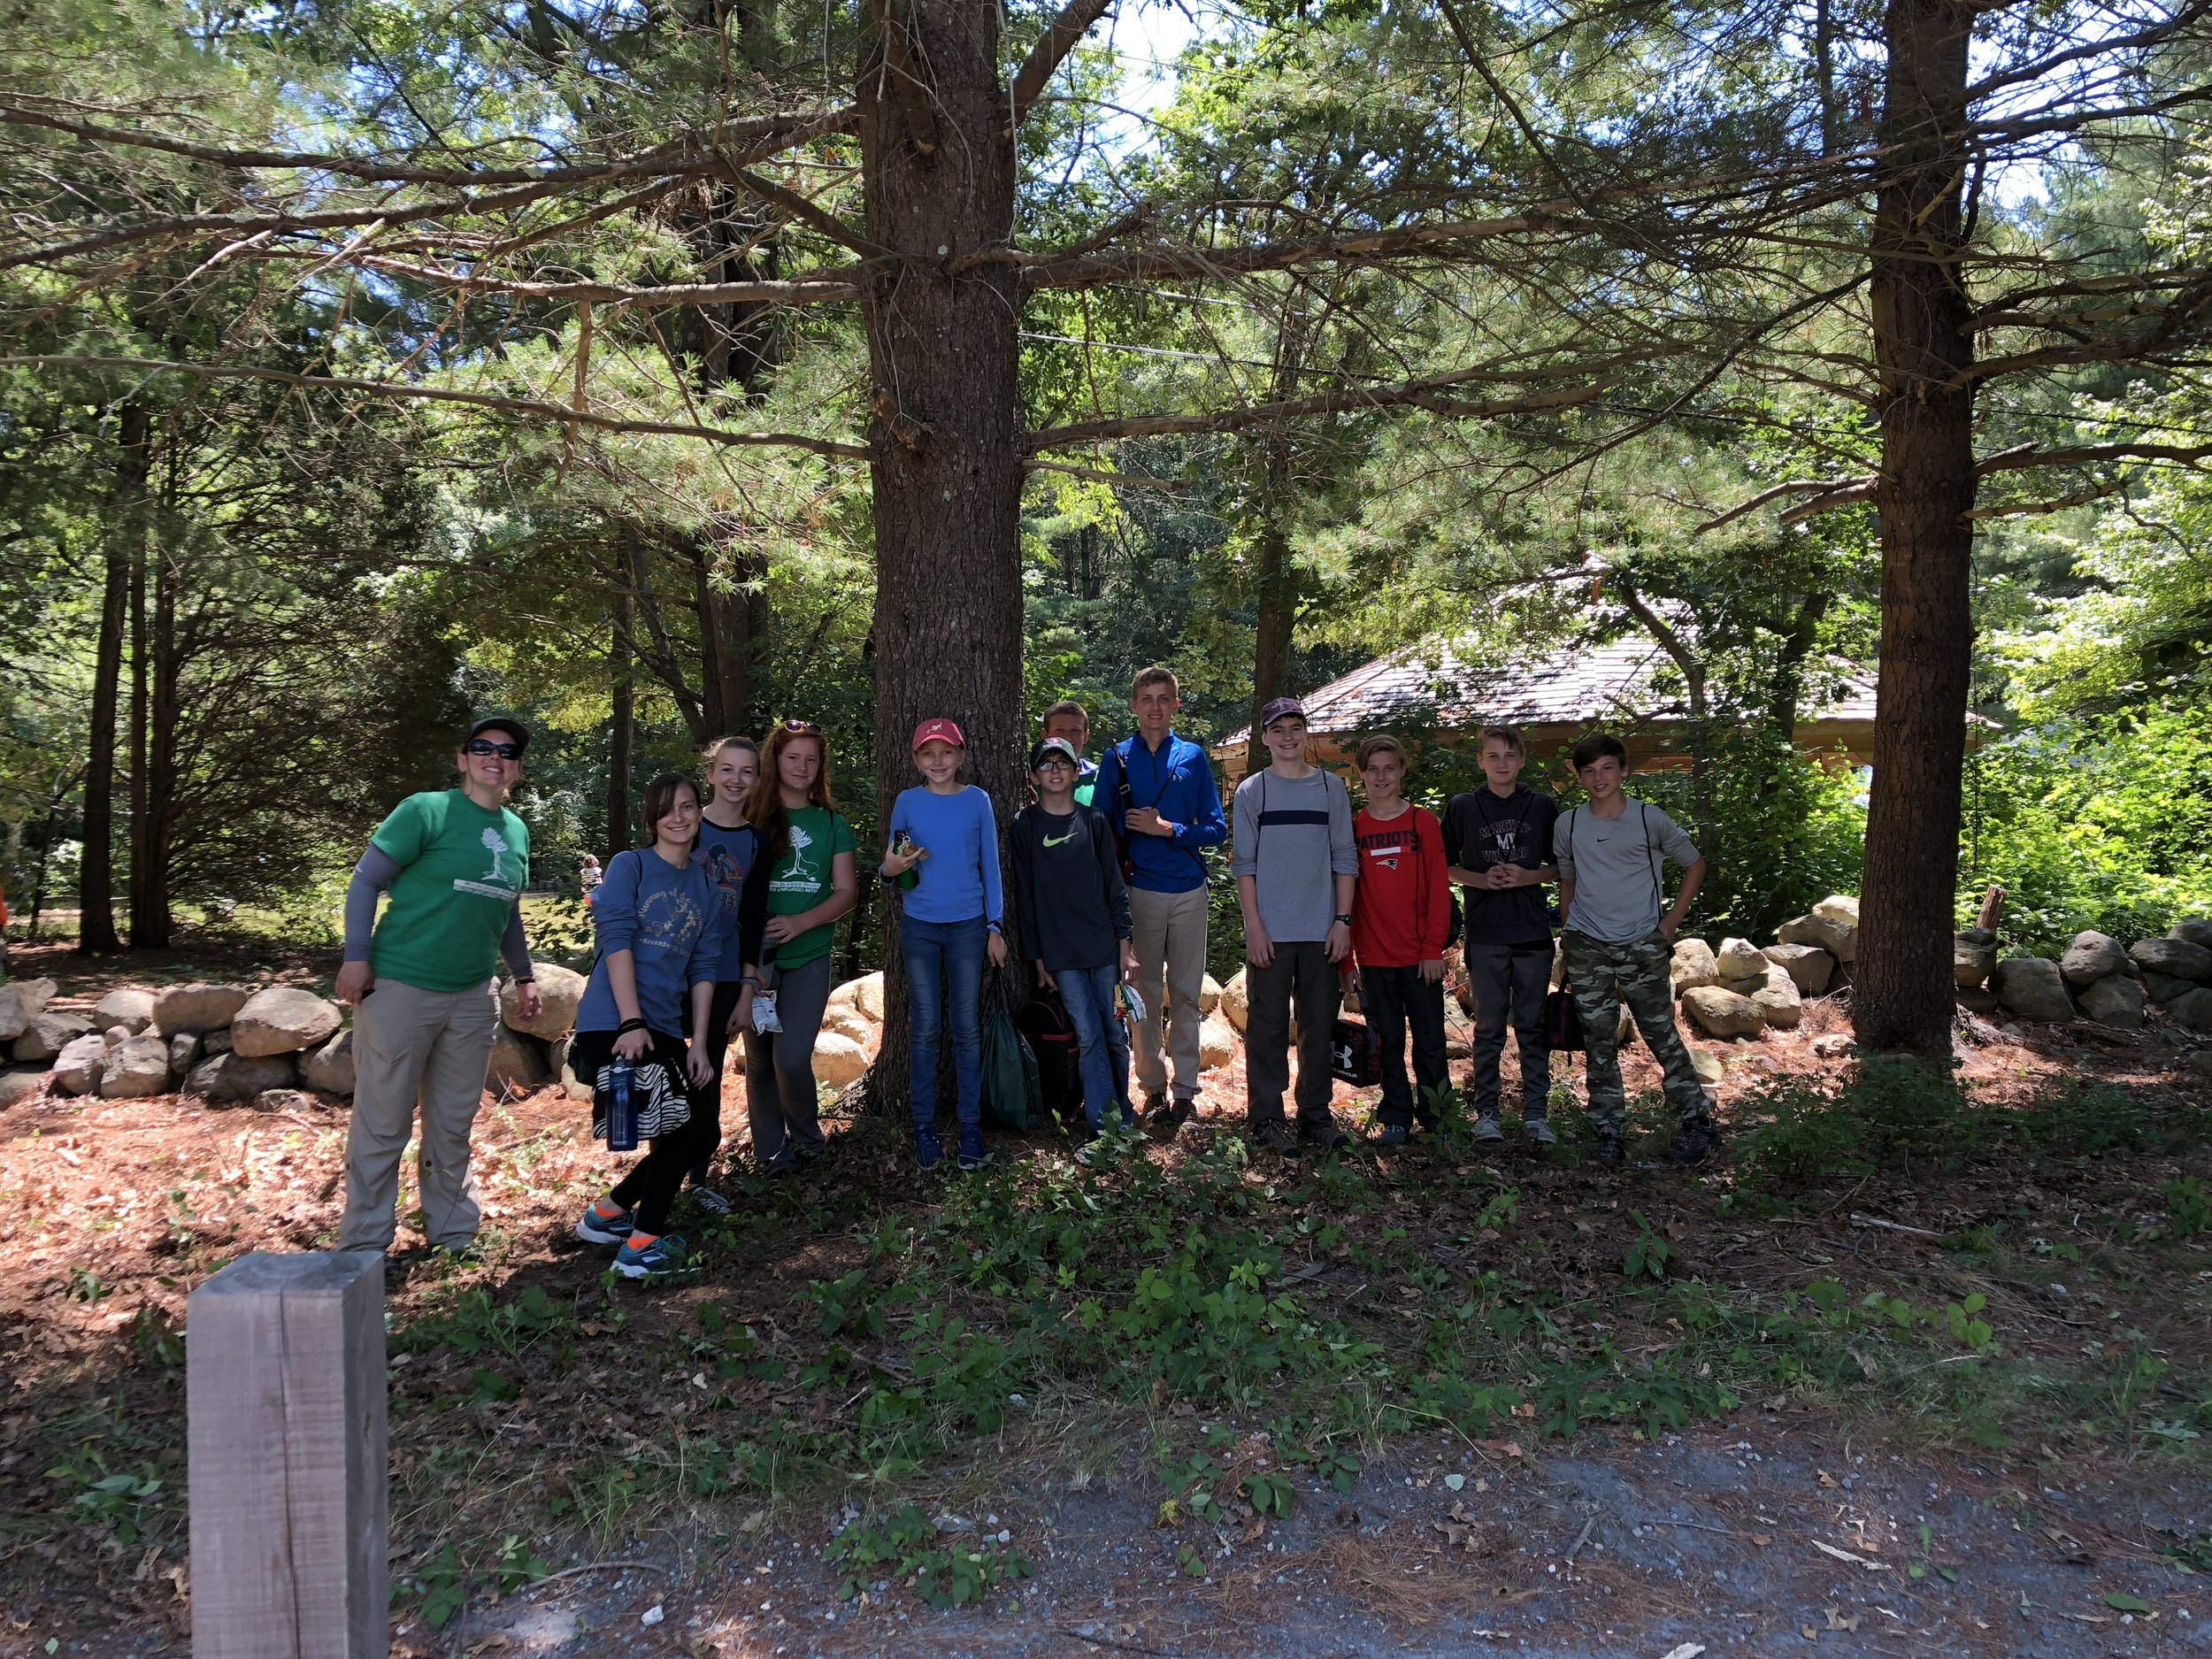 Green Team 1 team members at the South Shore Natural Science Center